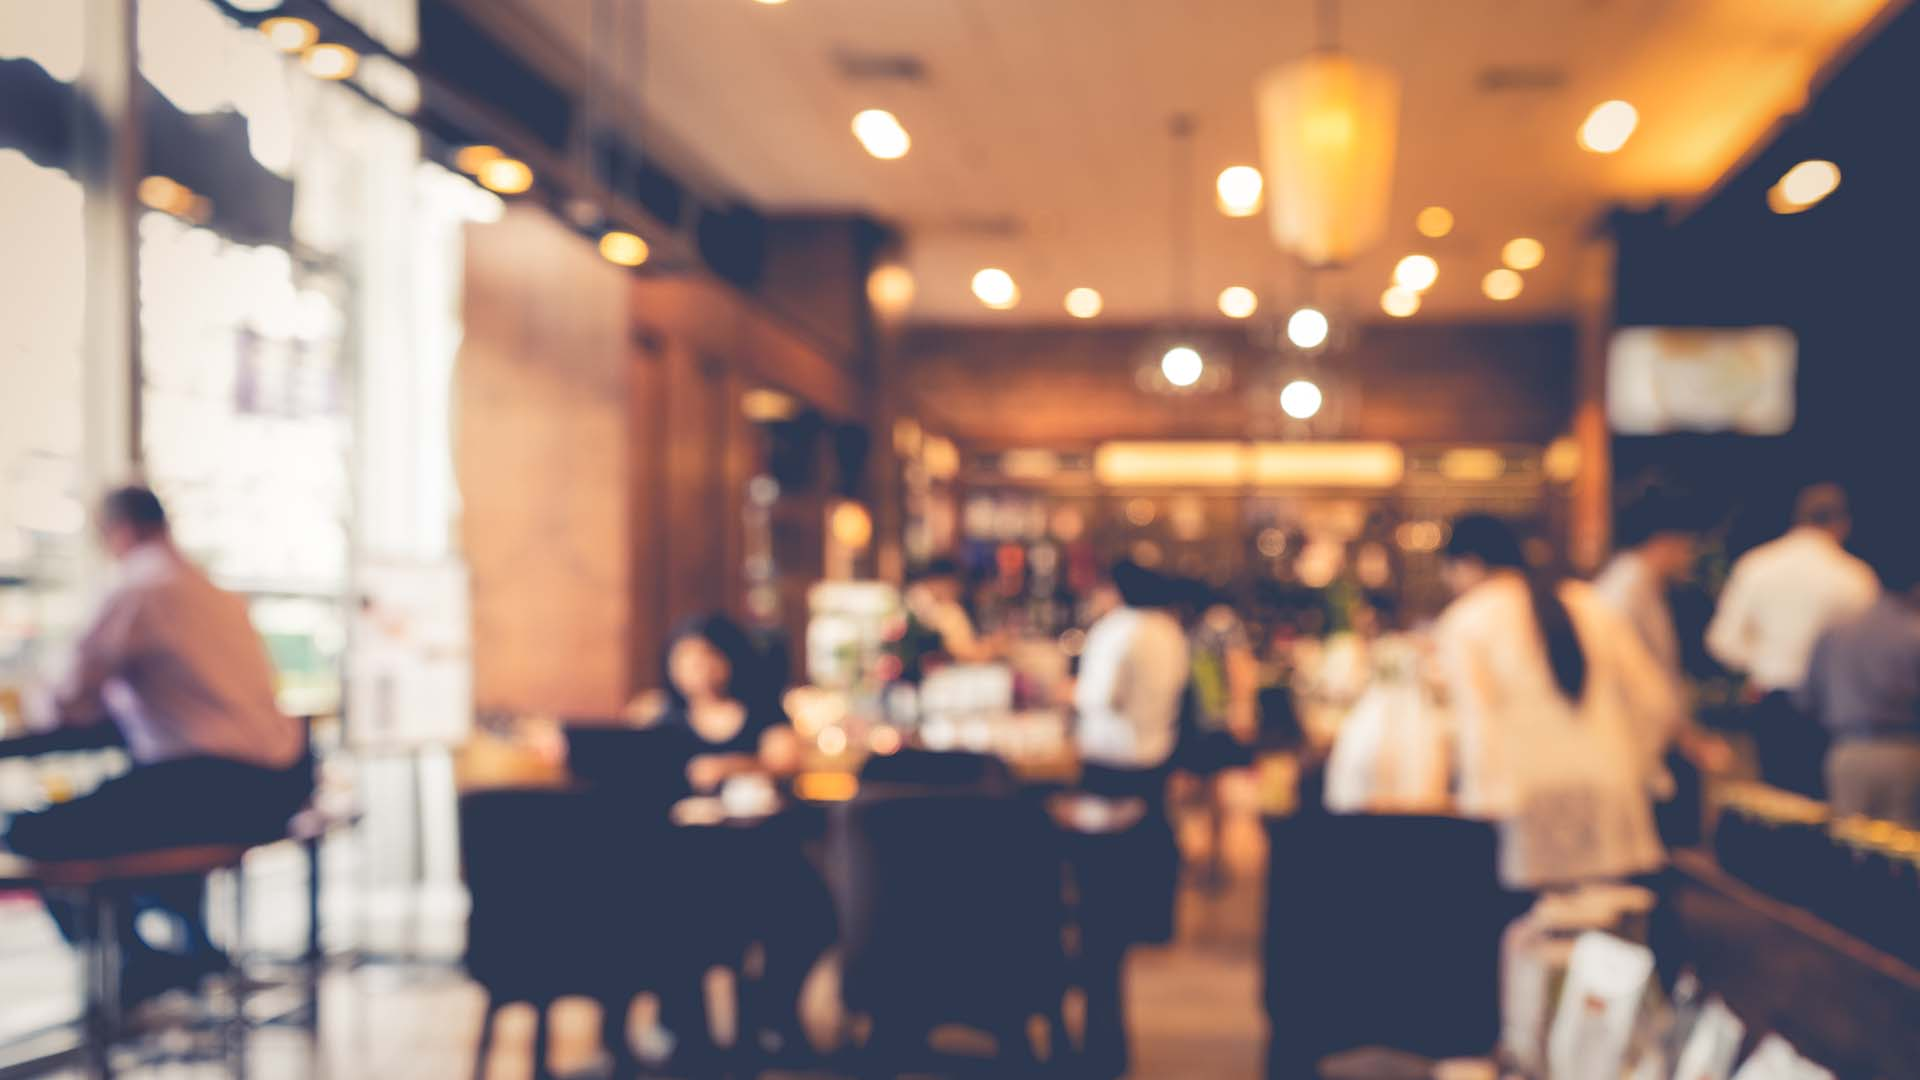 cafe-blurred-out